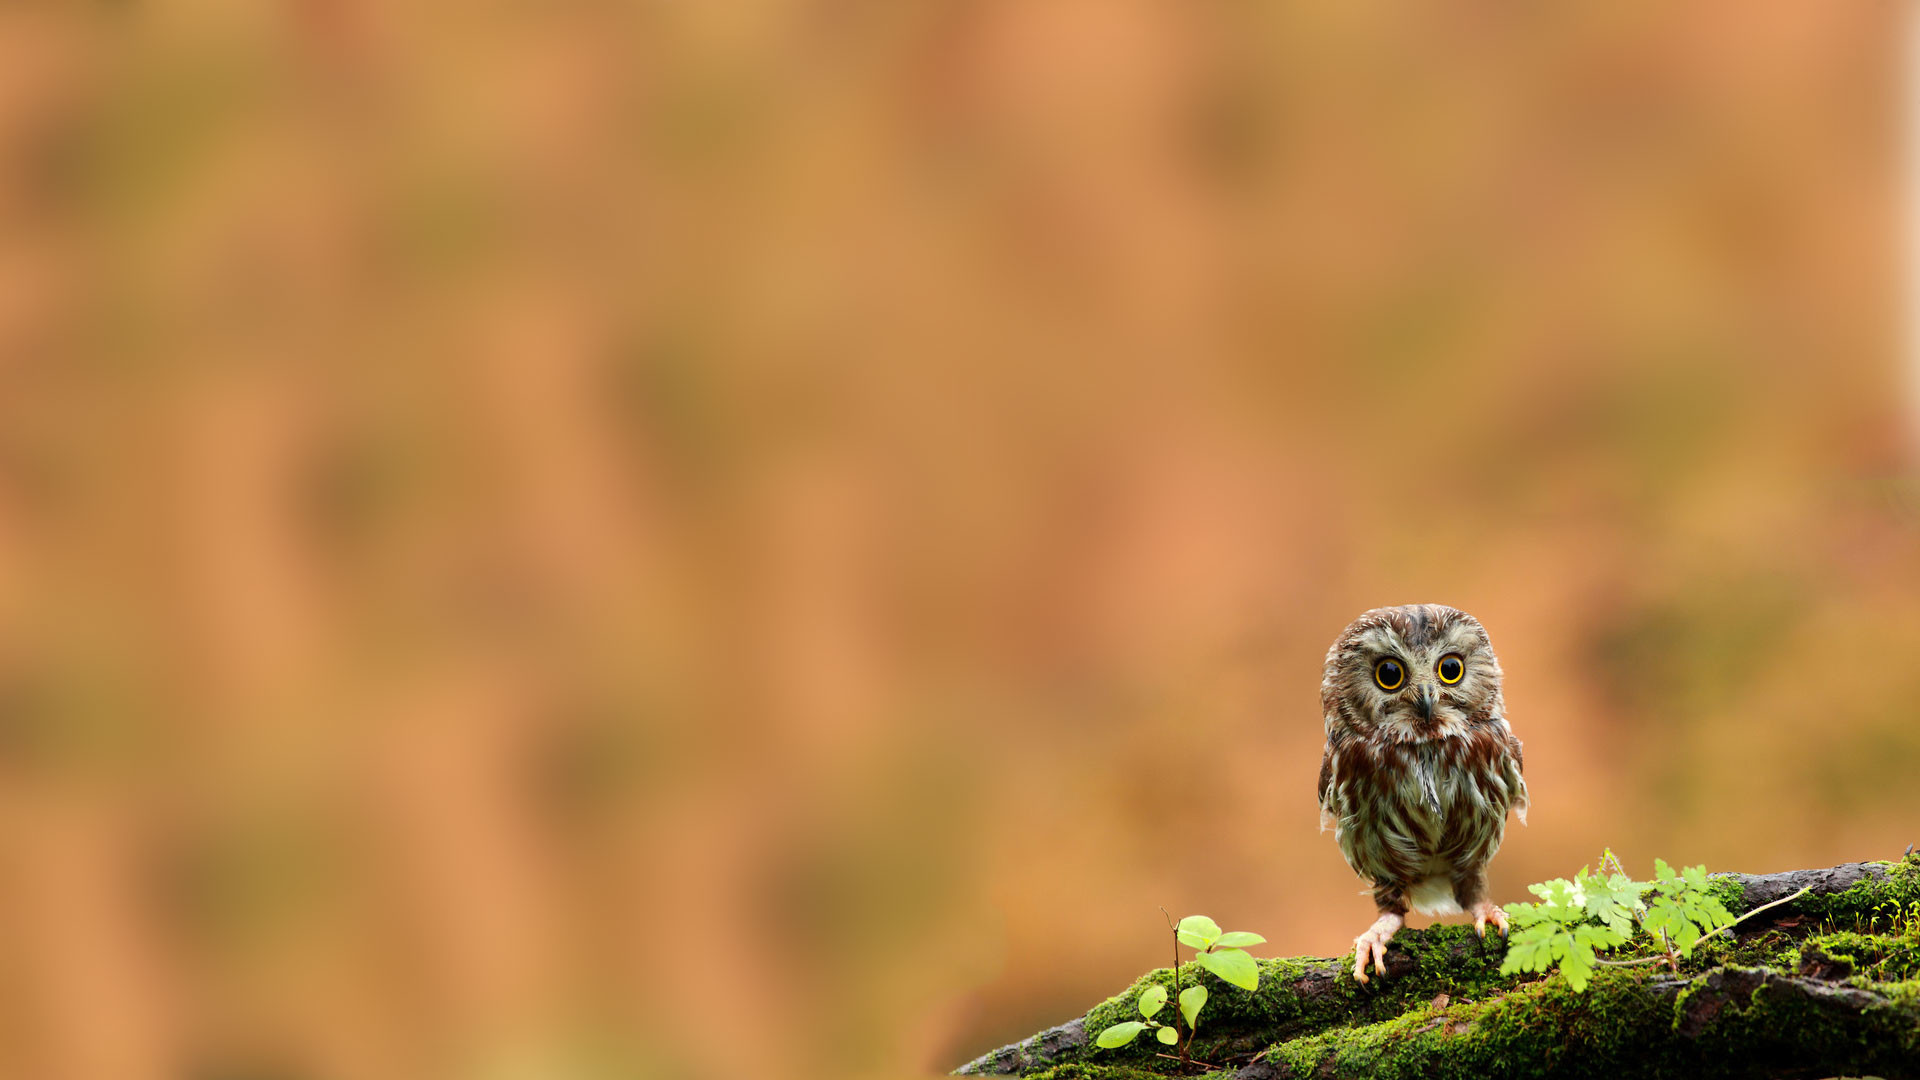 1920x1080 Cute-Owlet-full-hd-wallpaper-download